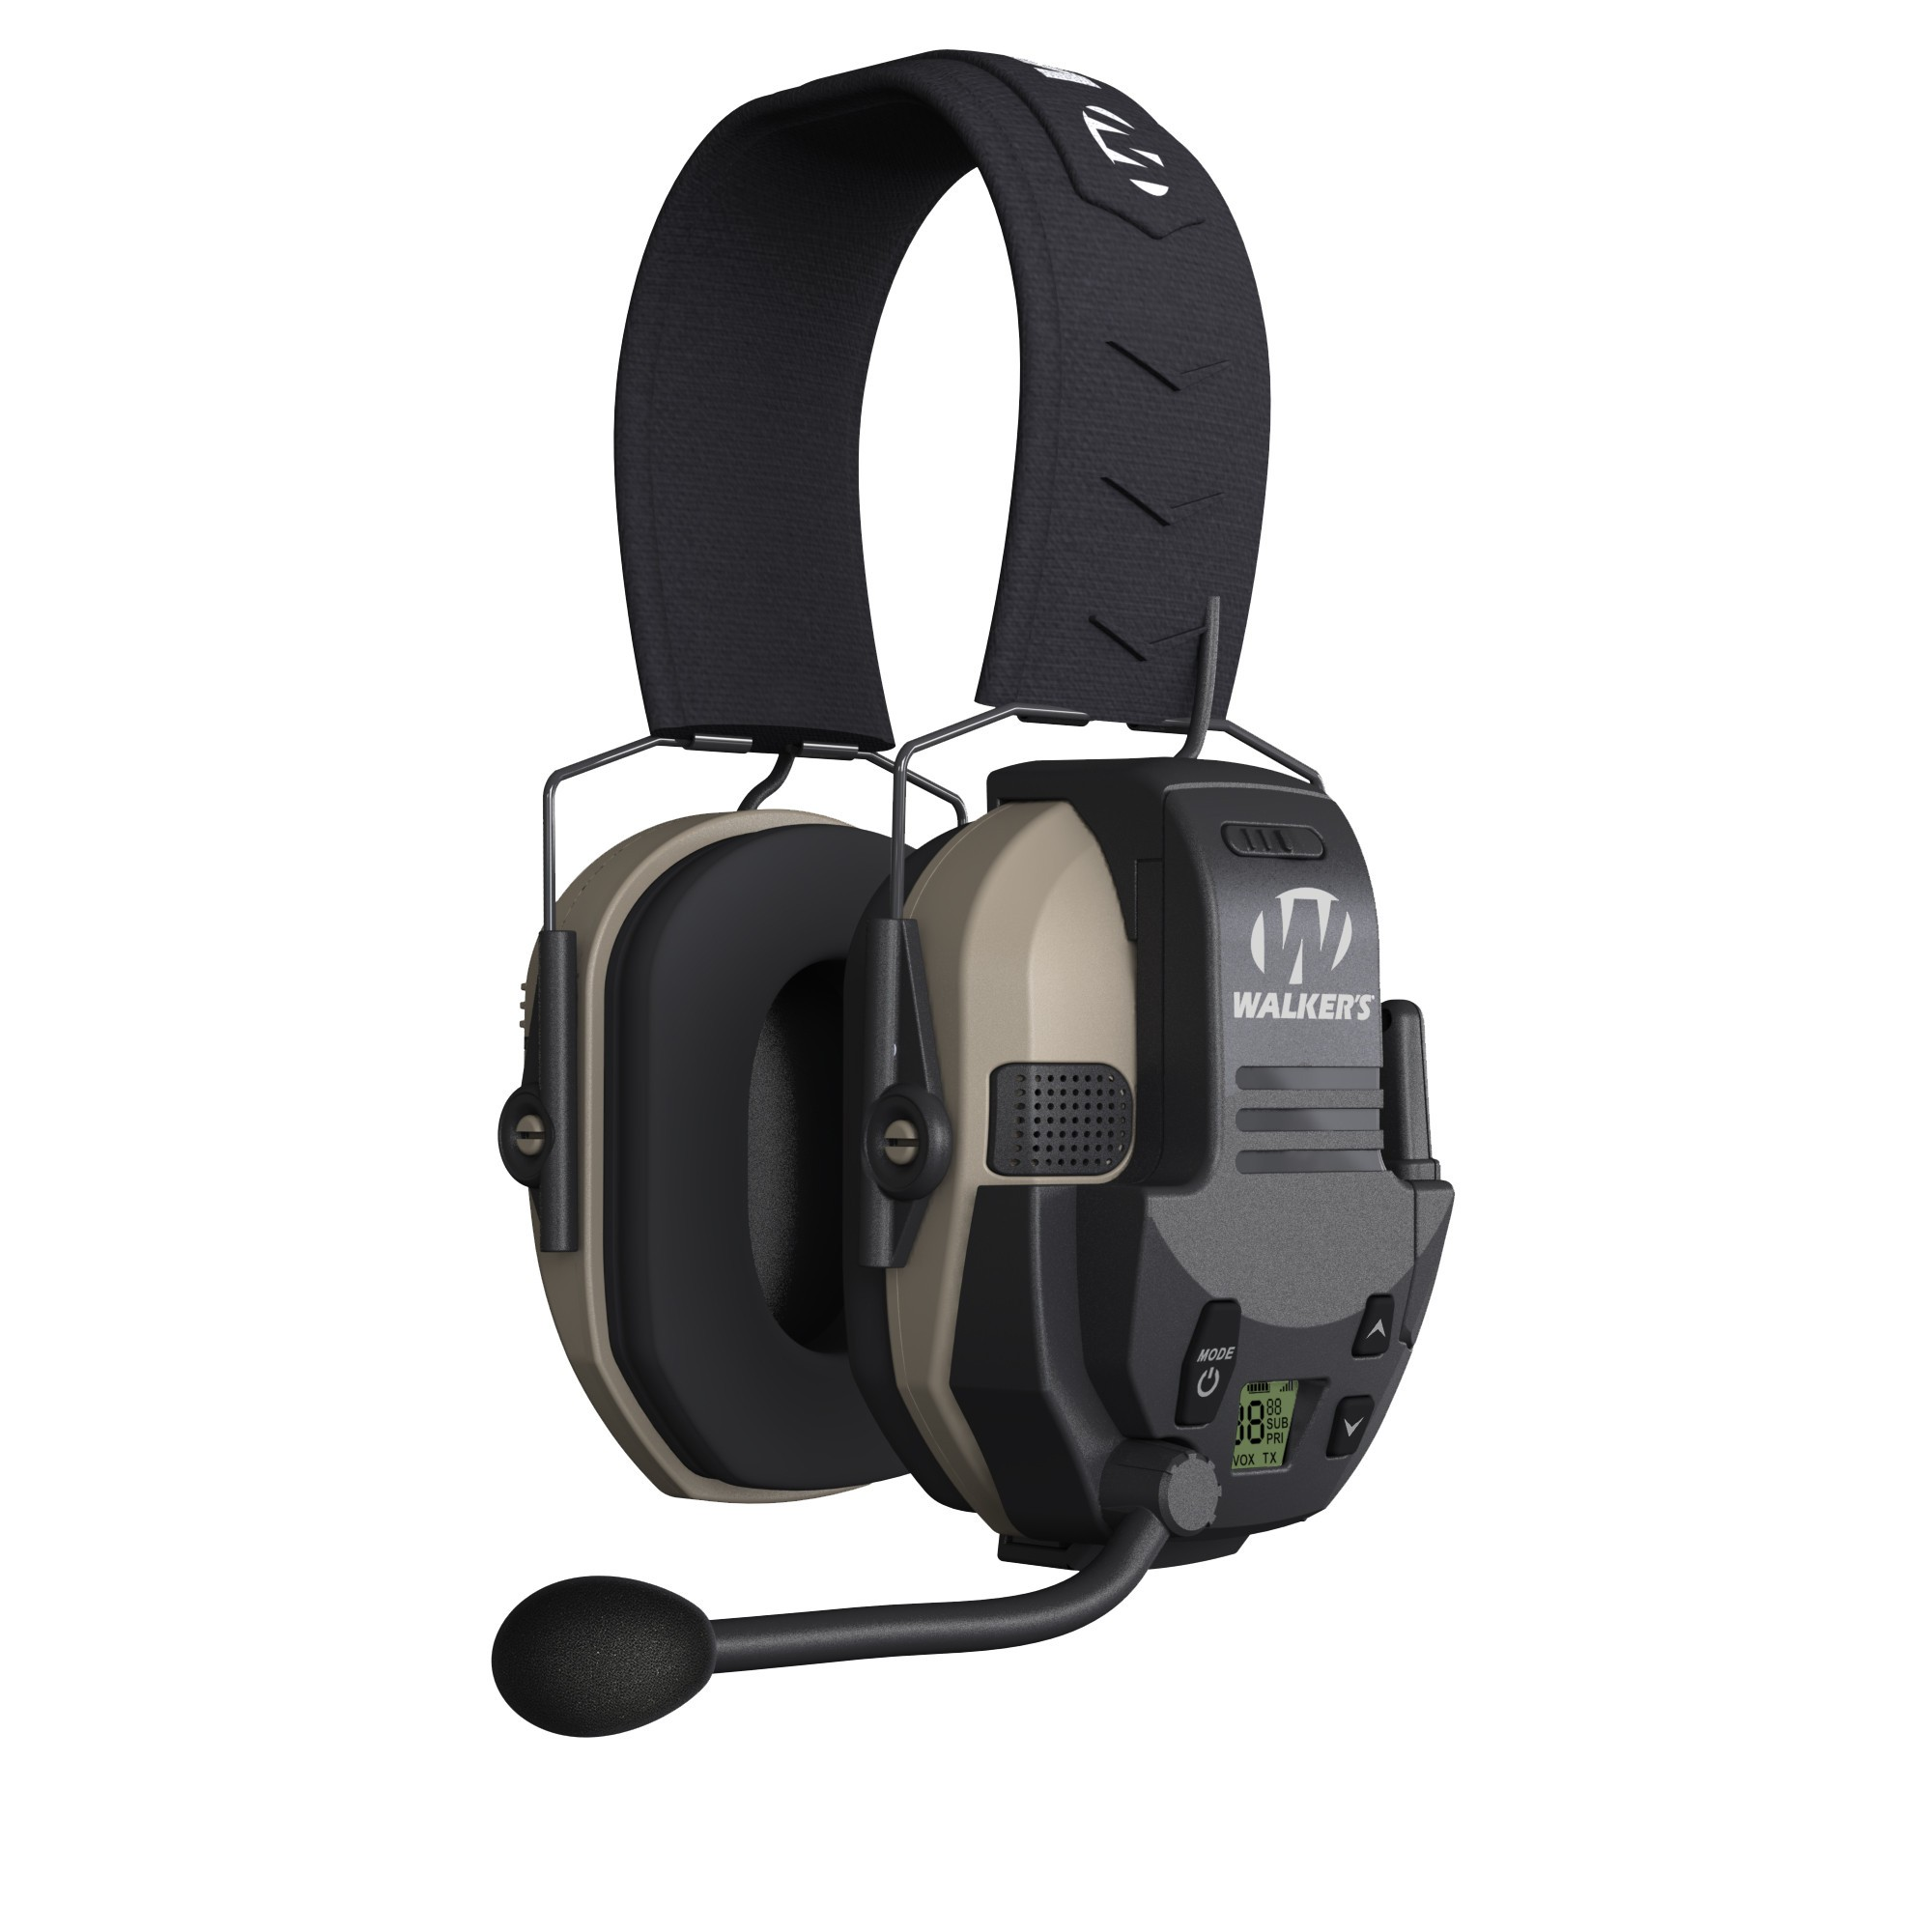 housesweet Casque de v/élo de Moto avec Fil Talkie-walkie Casque arri/ère si/ège Casque Radio interphone